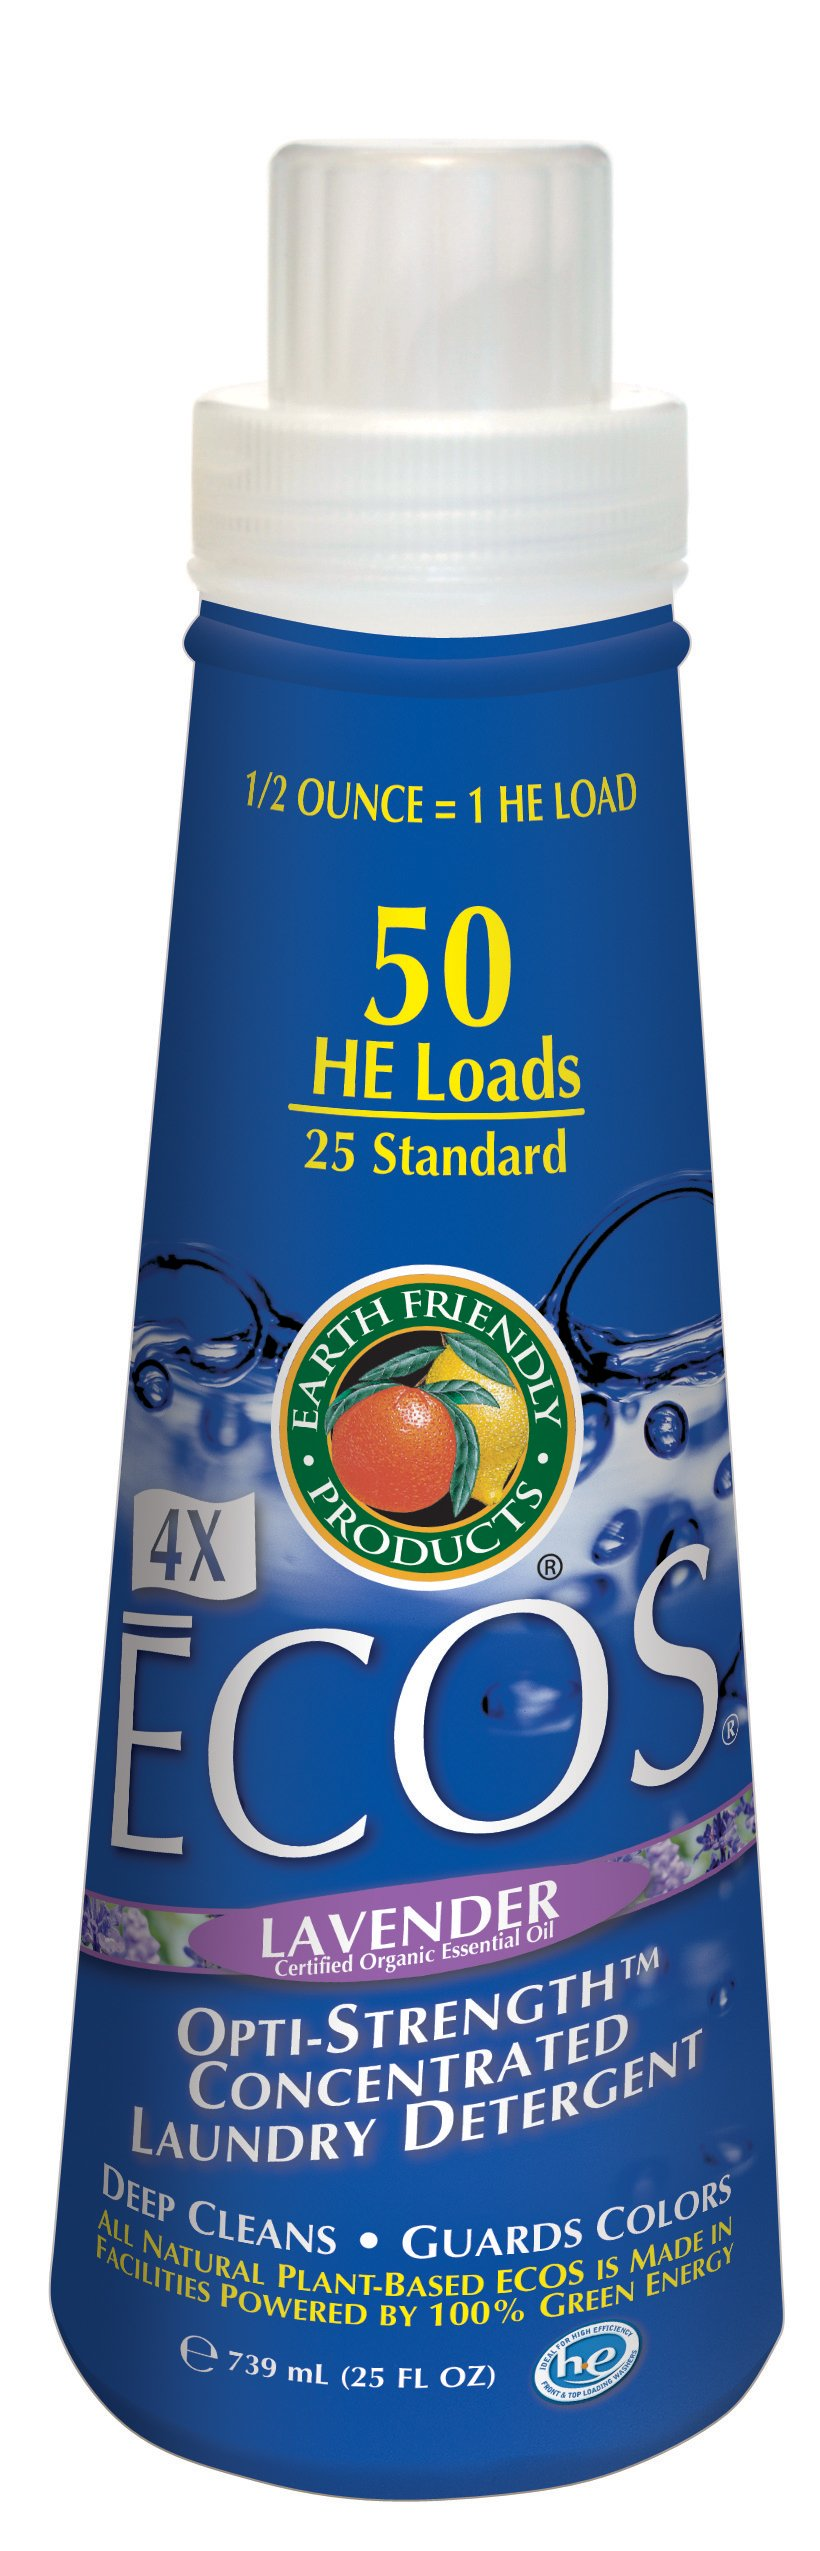 Earth Friendly Products 980006 ECOS 4X Concentrate Lavender Liquid Laundry Detergent, 25 oz Bottle (Case of 6) by Earth Friendly Products